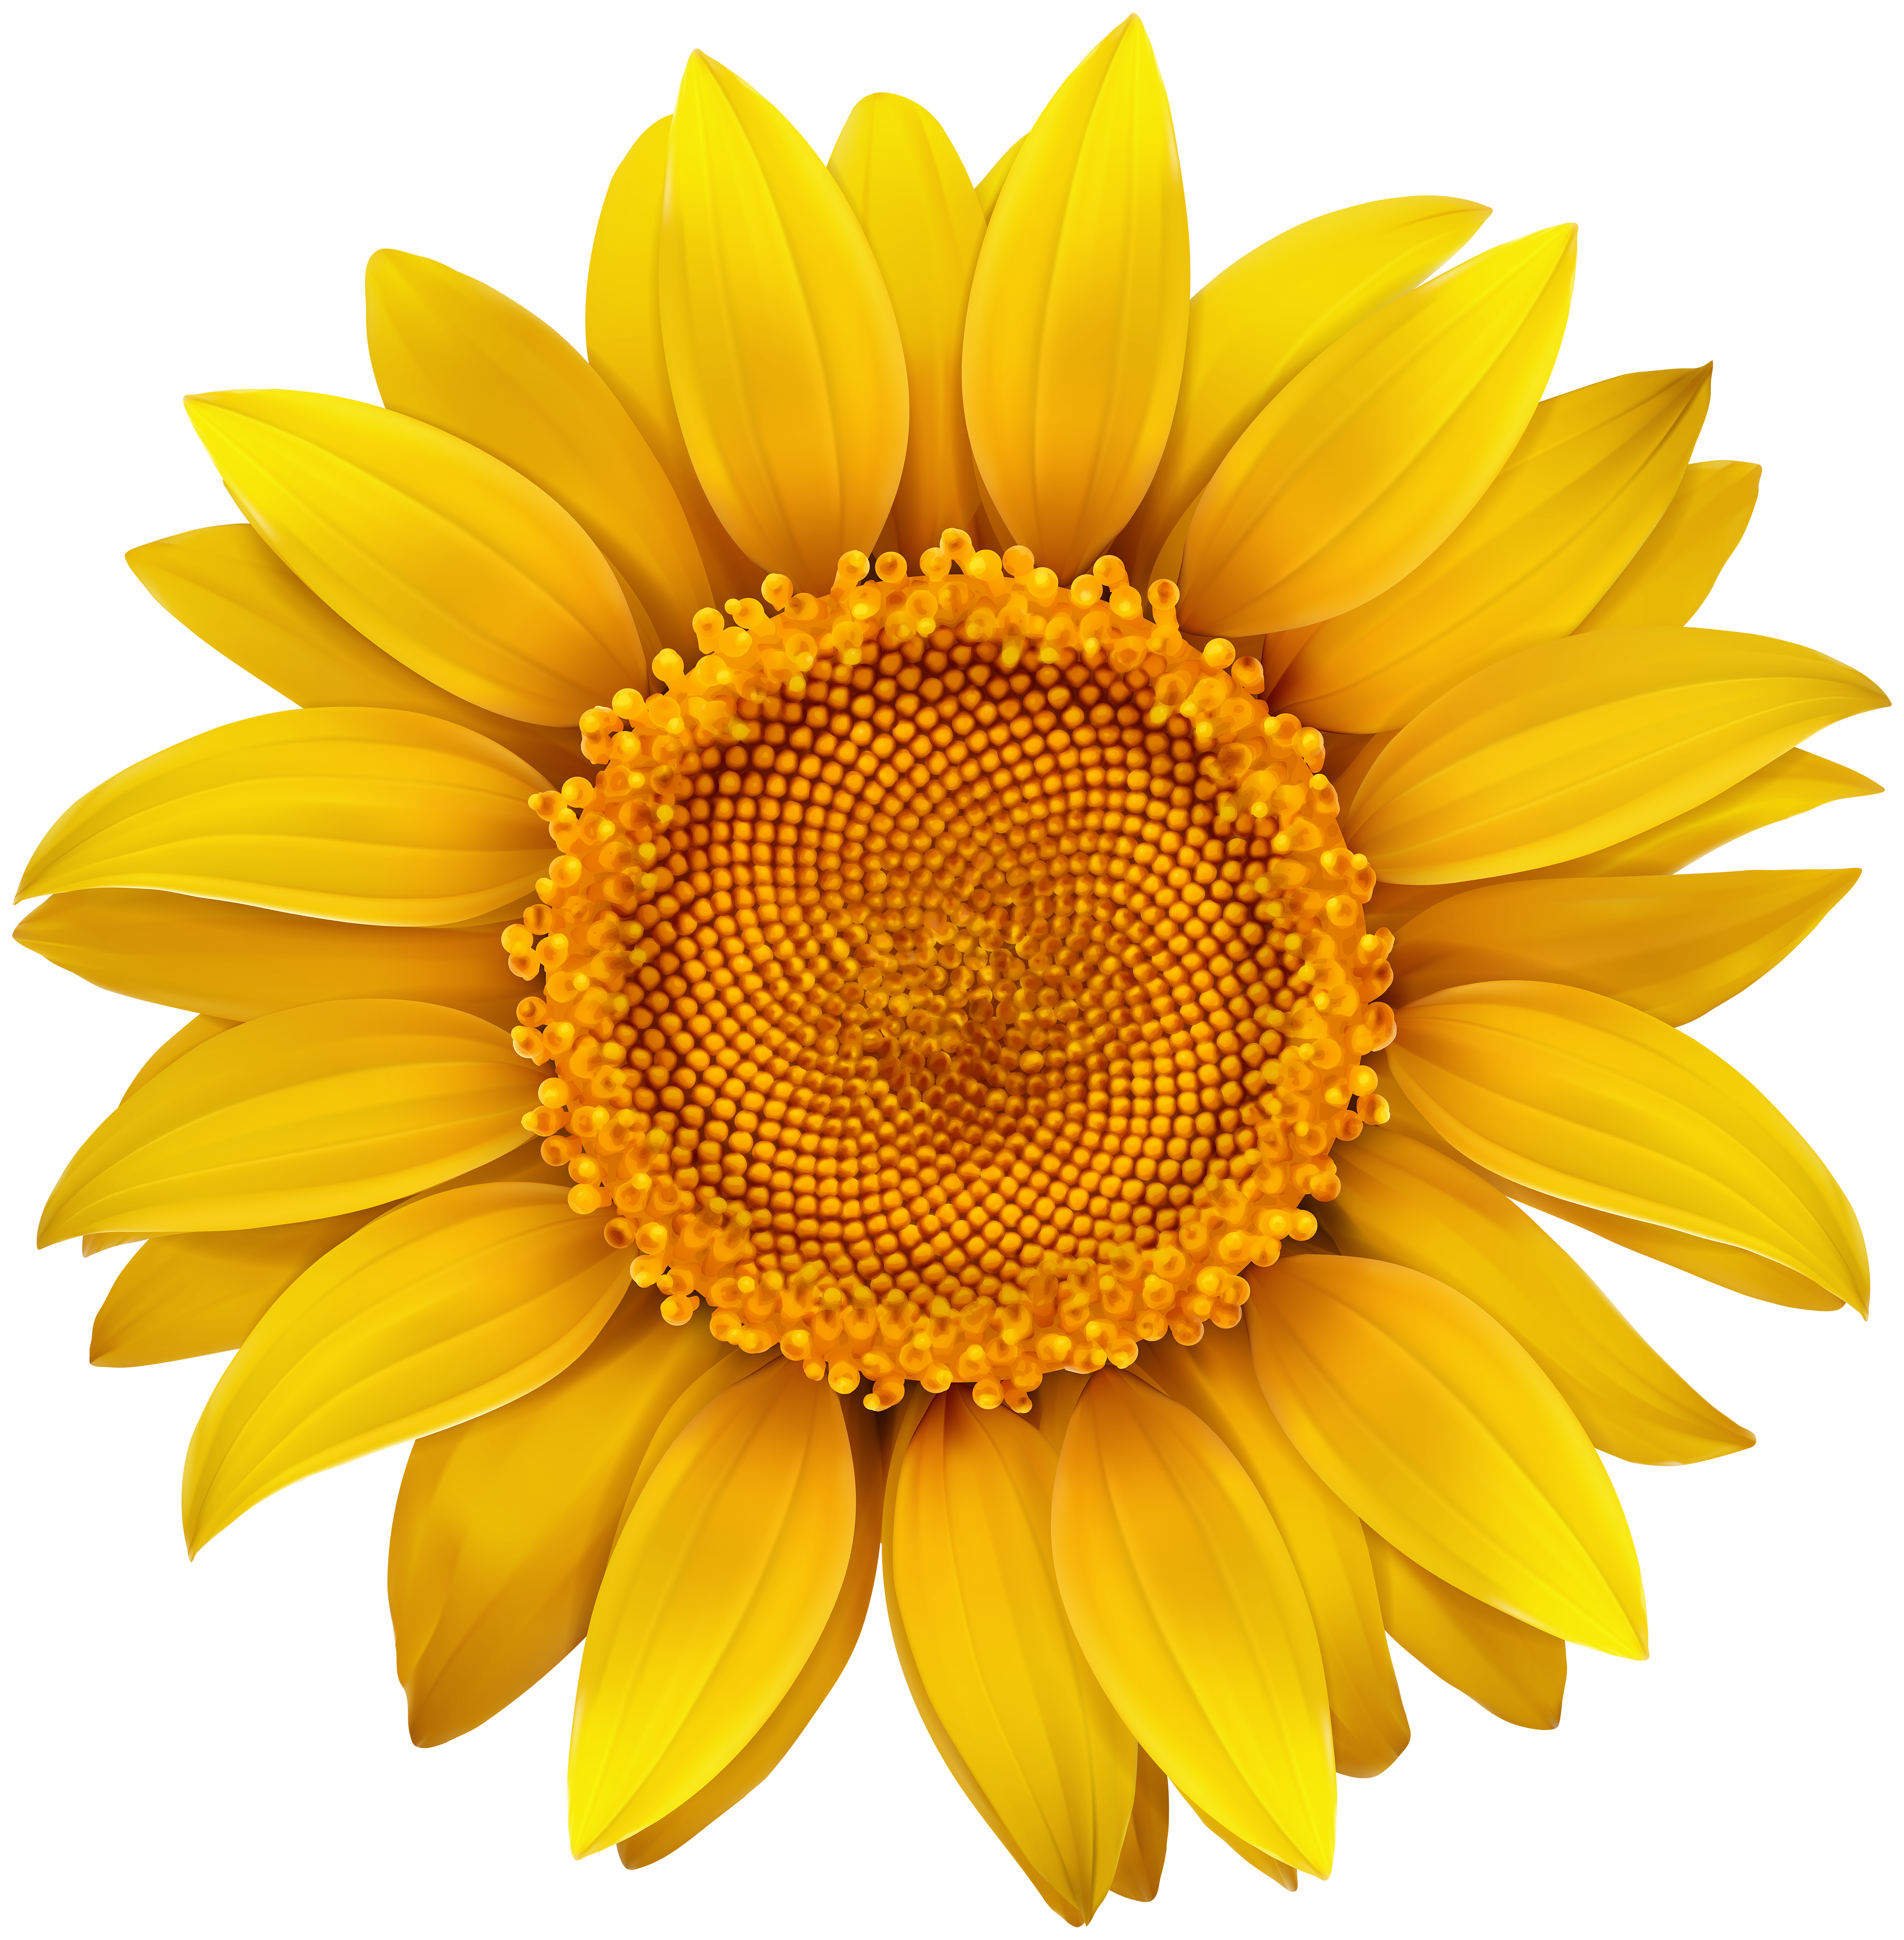 Fall Sunflower Png - Sunflower PNG Image​ | Gallery Yopriceville - High-Quality Images ...